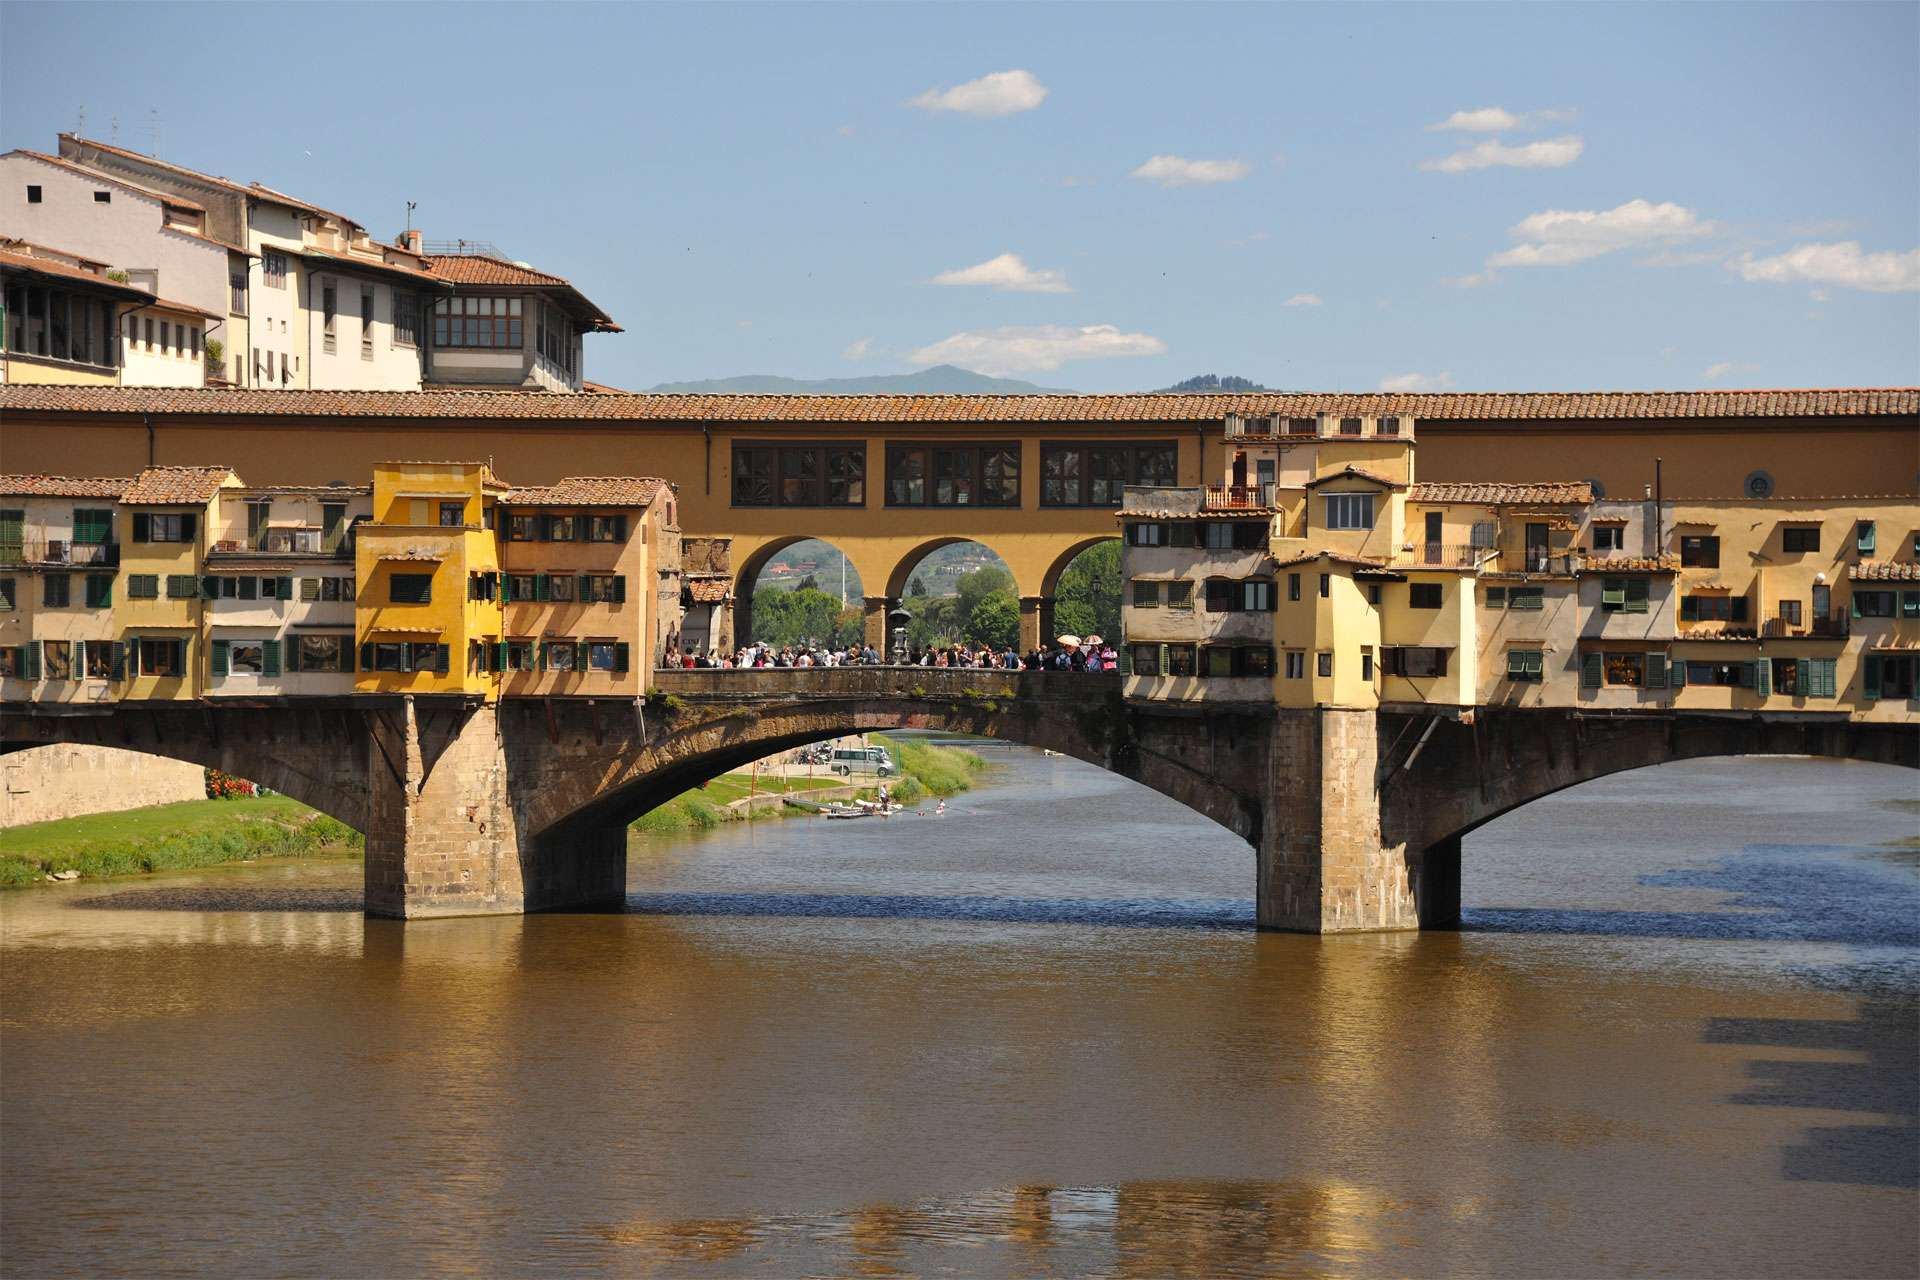 Where to park your car in Florence